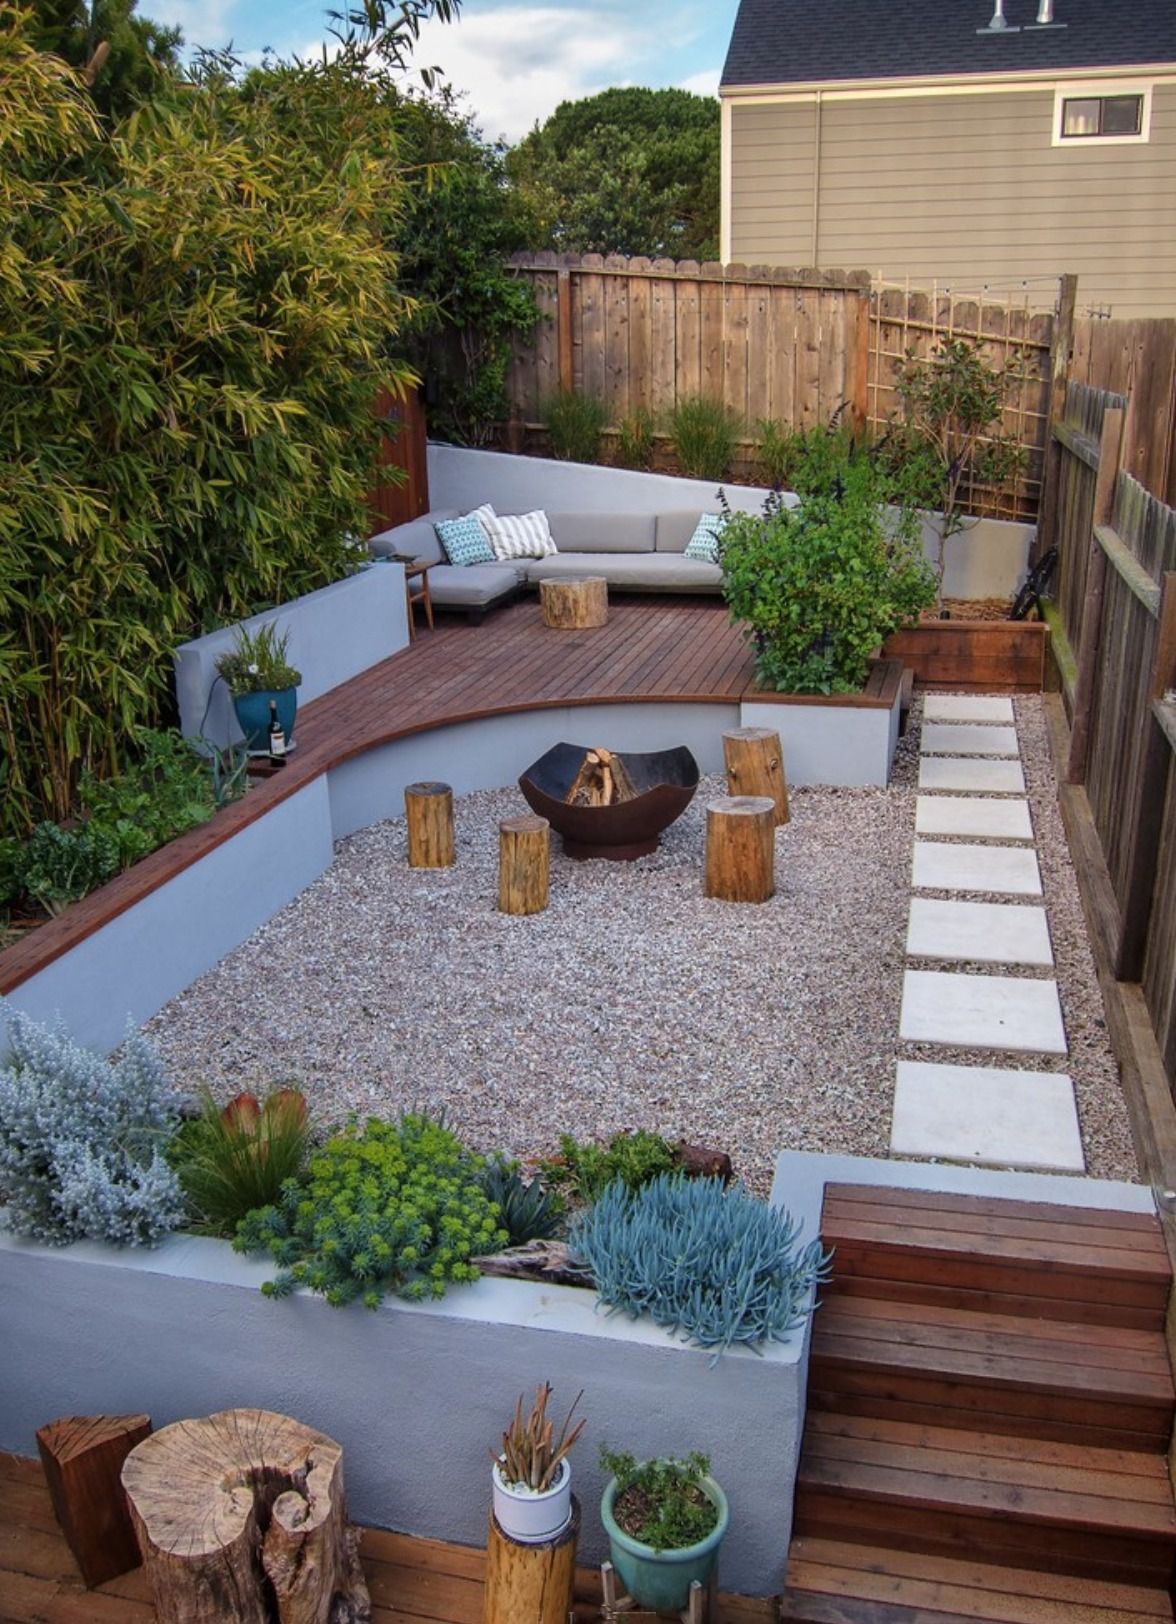 50 Backyard Landscaping Ideas To Inspire You for 13 Smart Concepts of How to Upgrade Backyard Hill Ideas